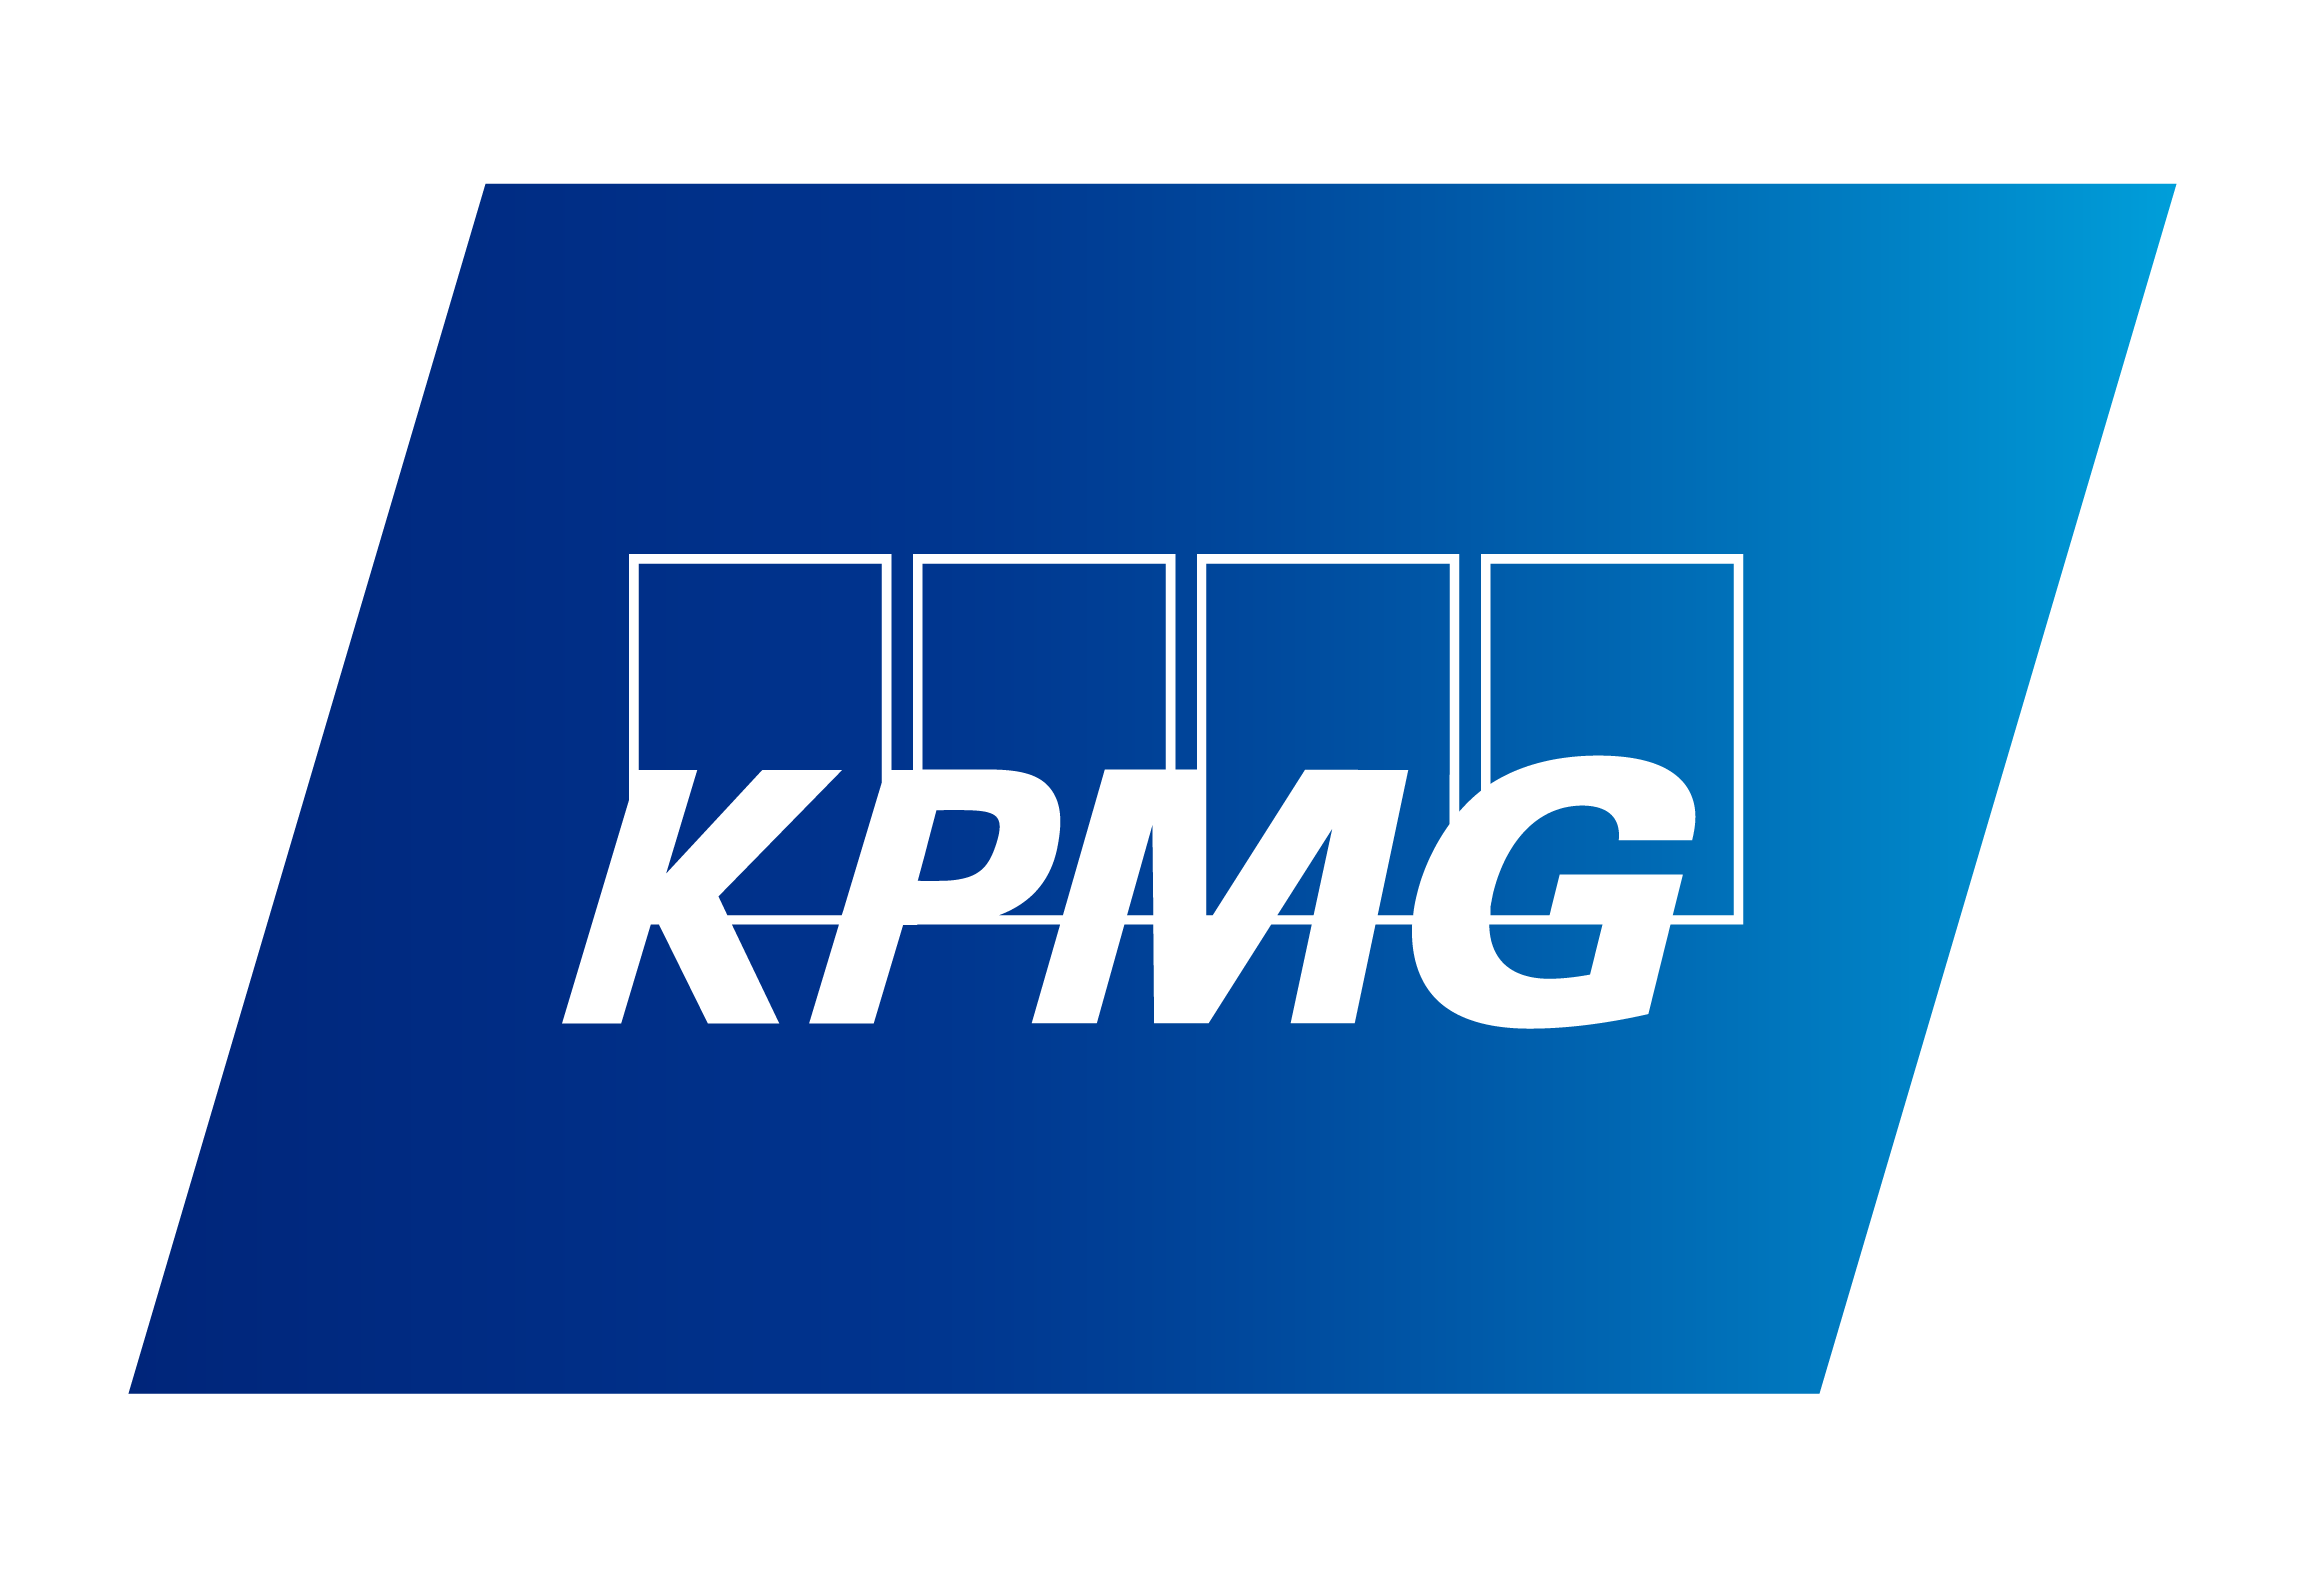 KPMG Endorsement RGB